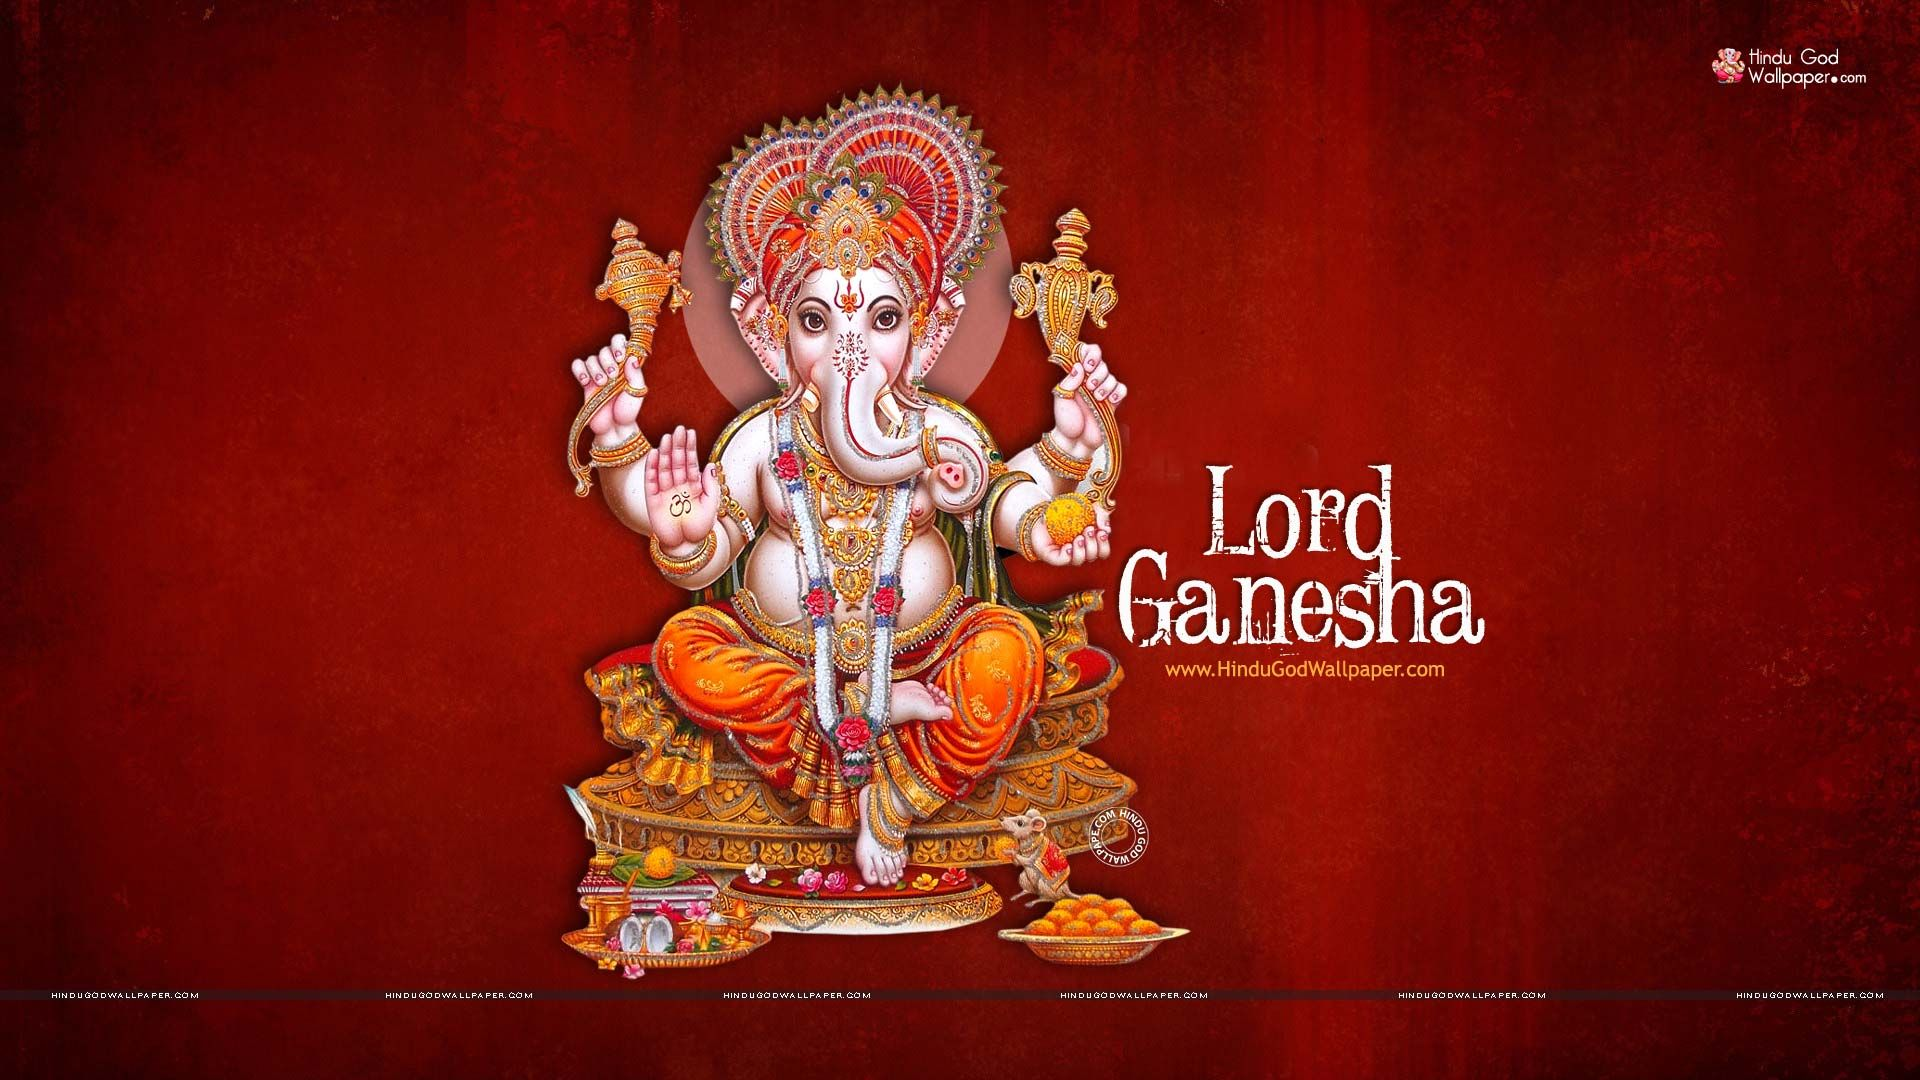 Lord Ganesha Hd Wallpapers 1080p Hd Wallpapers 1080p Hindu Gods Hd Wallpaper